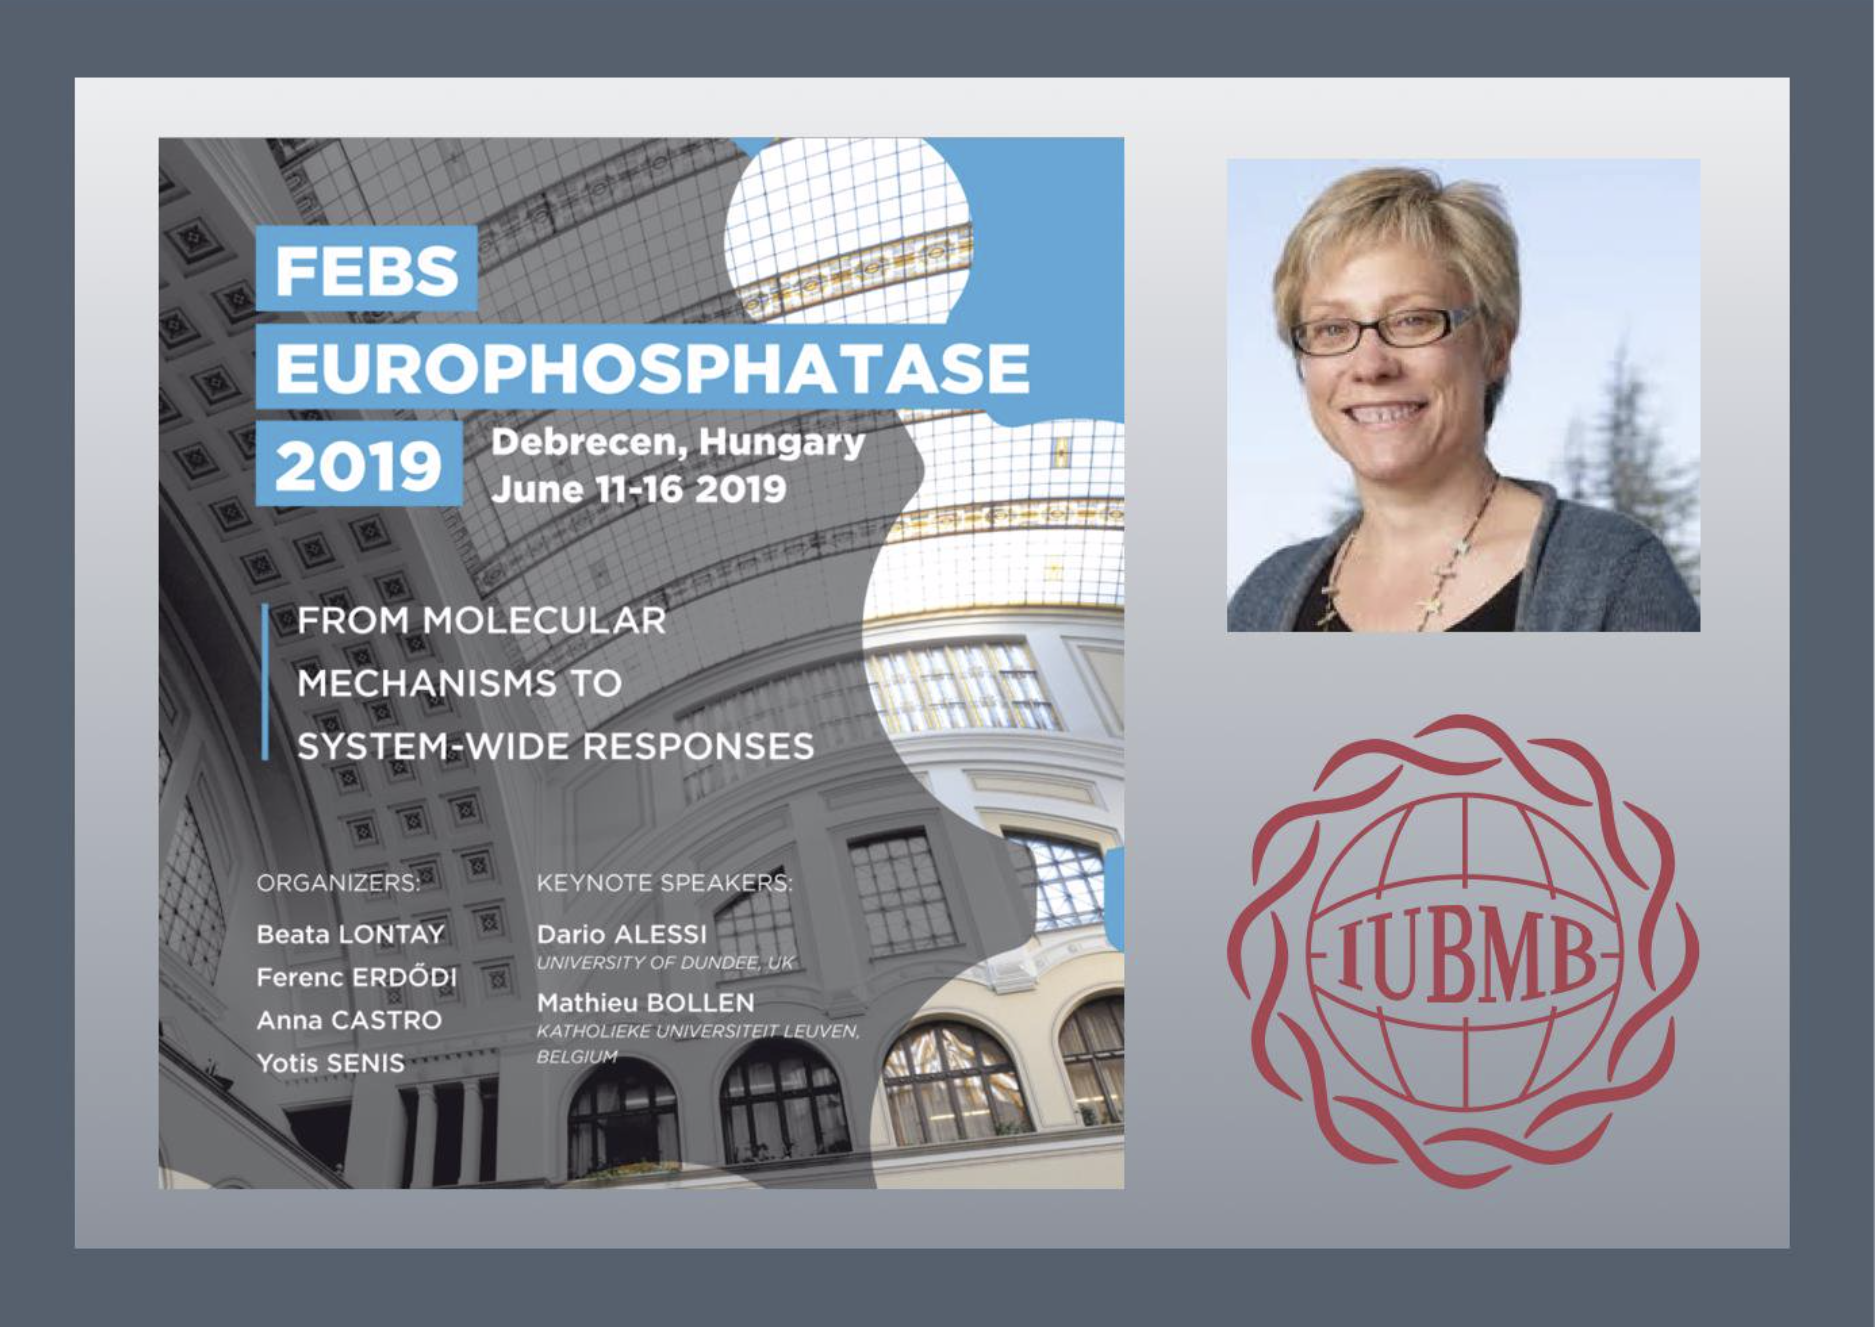 - Martha is IUBMB lecturer at FEBS Europhosphatase Conference in Debrecen, Hungary